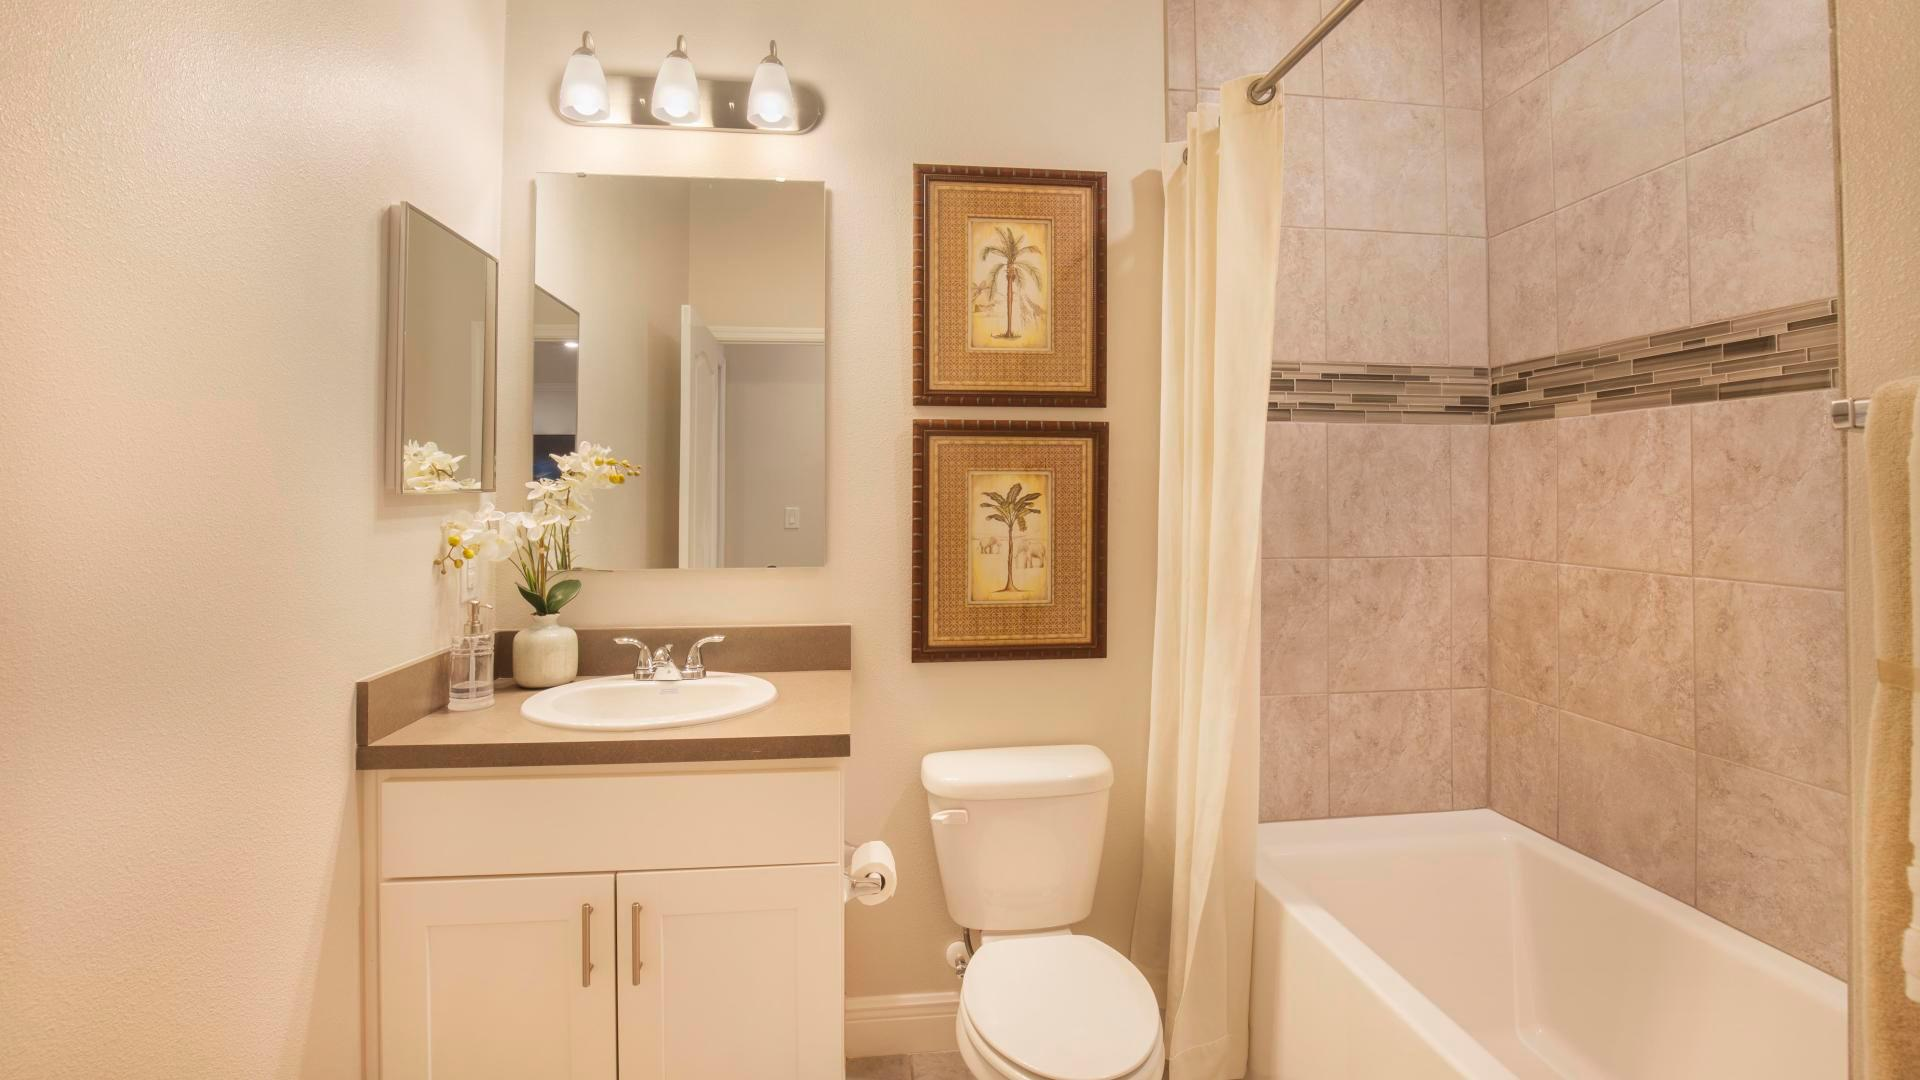 Bathroom featured in the Wilmington By Maronda Homes in Ocala, FL